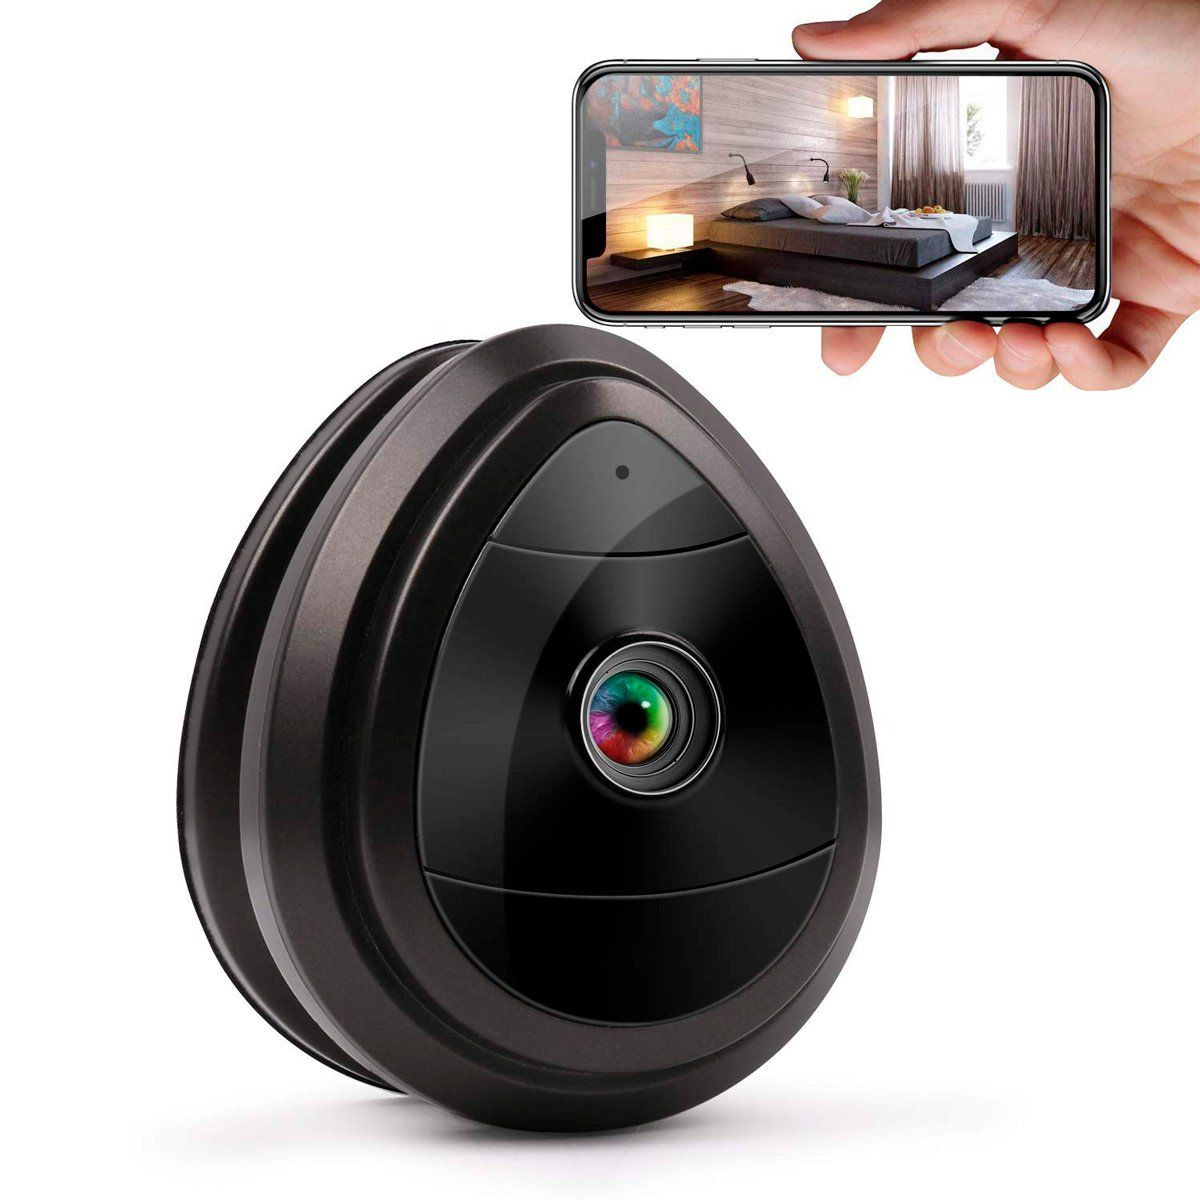 12 Best Reviewed Home Security Cameras Security Cameras For Home Wireless Home Security Systems Outdoor Security Camera